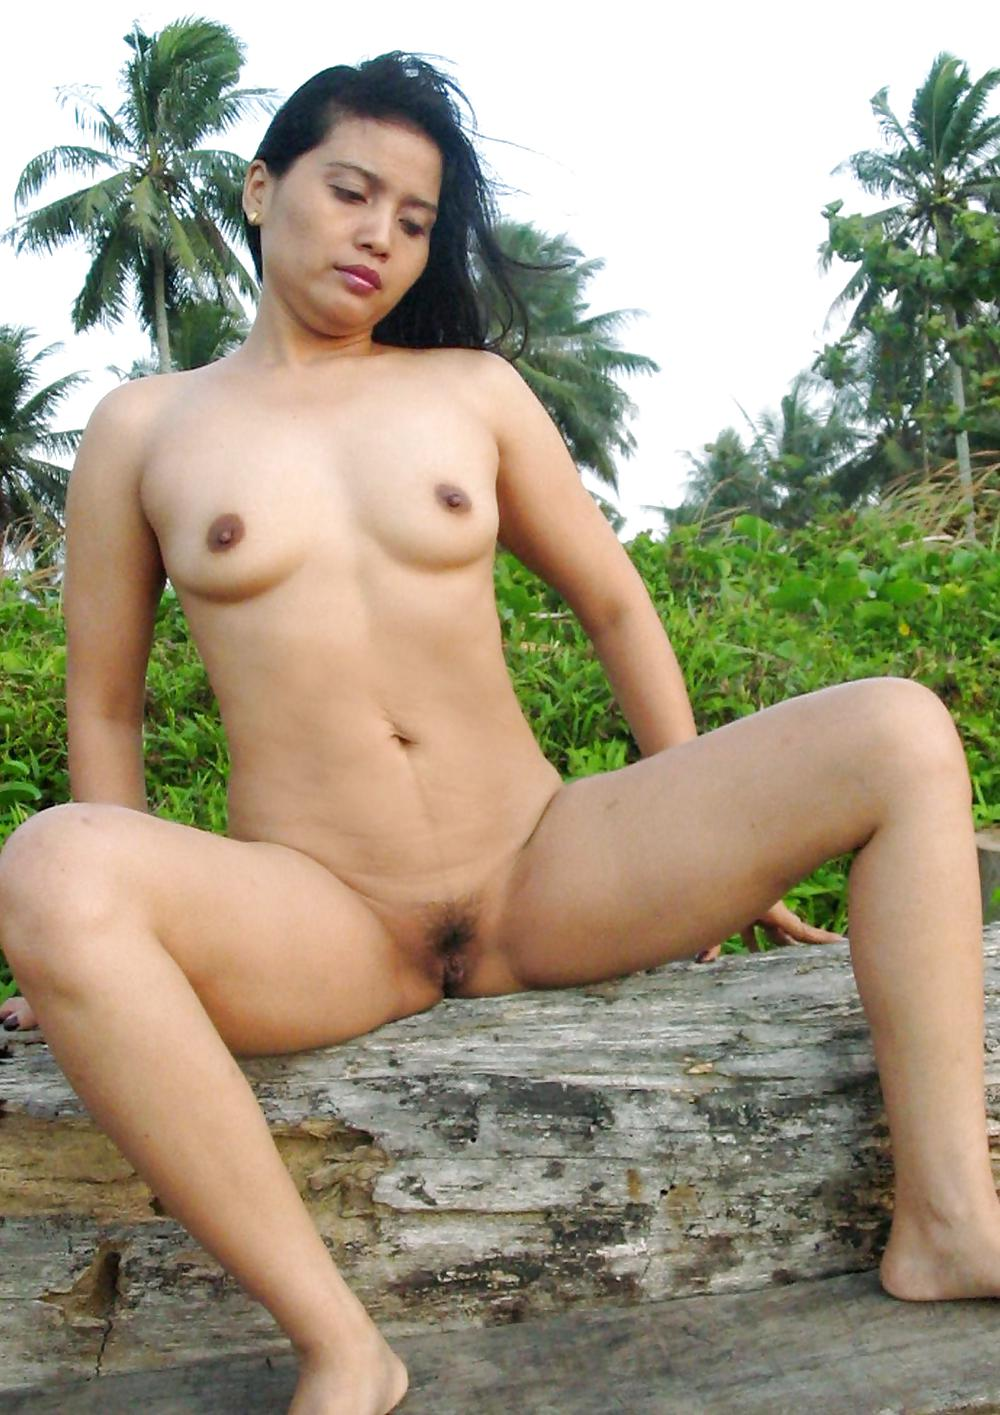 Myanmar model sex picture